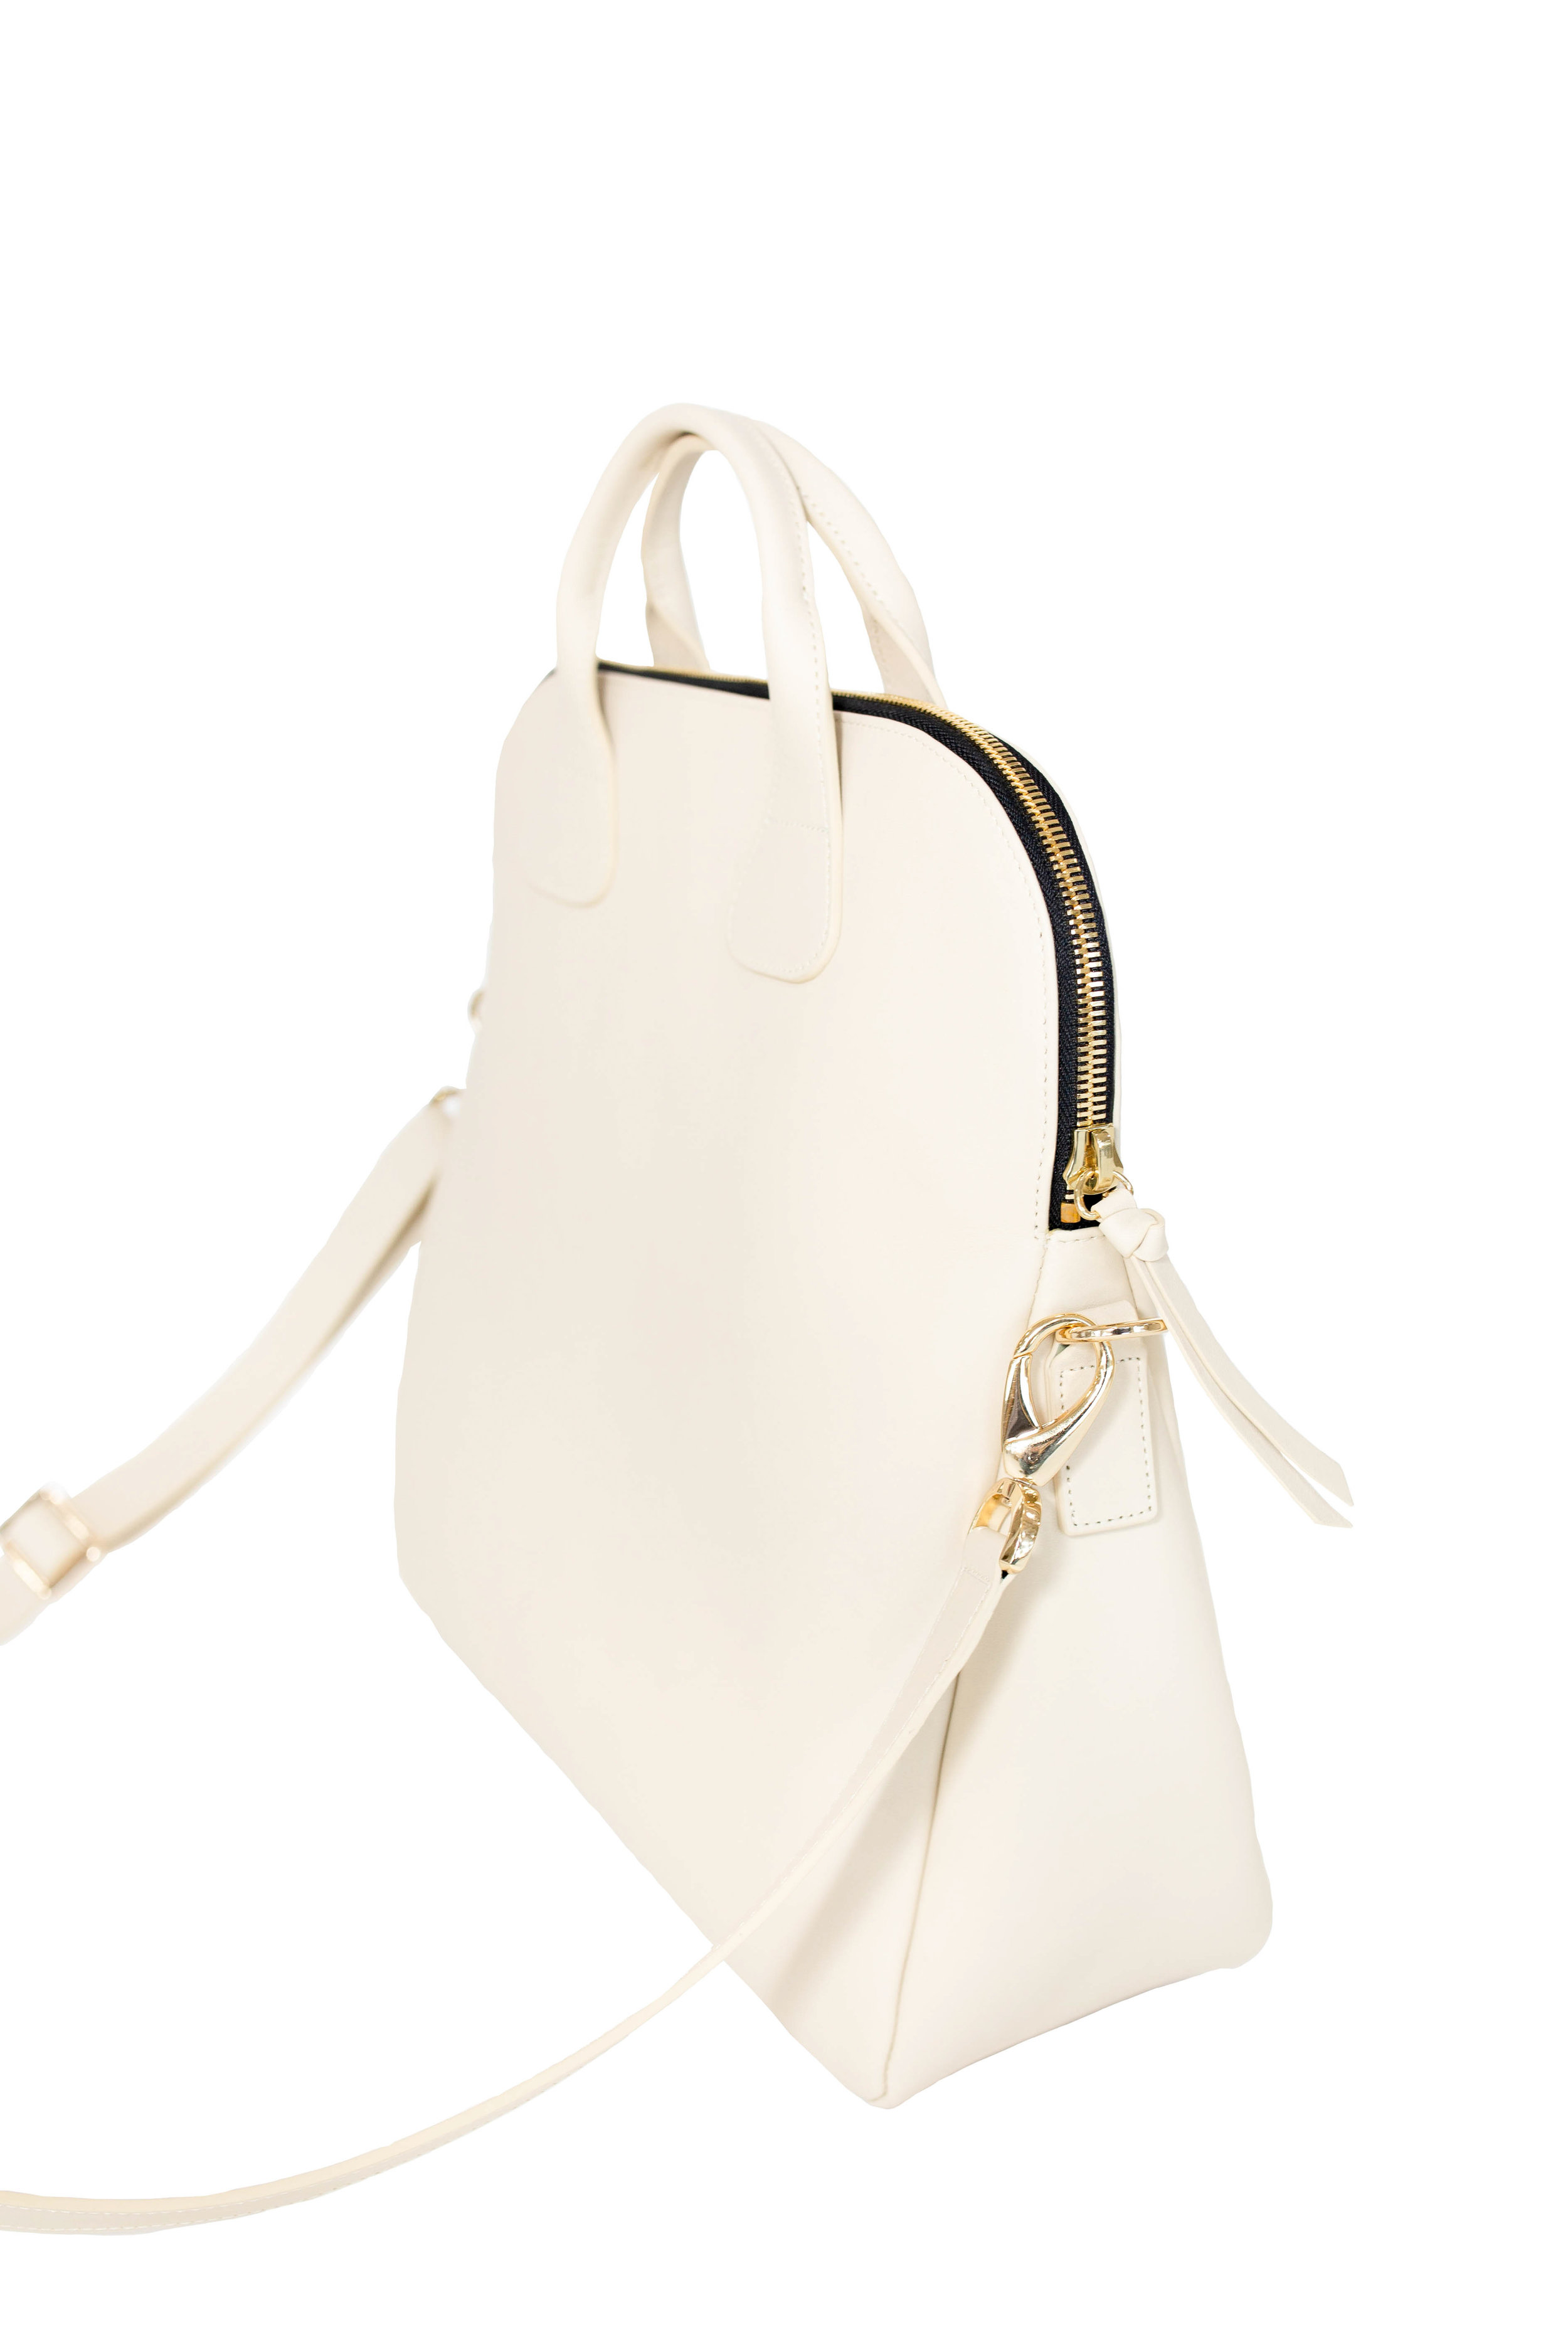 White Leather Bags -